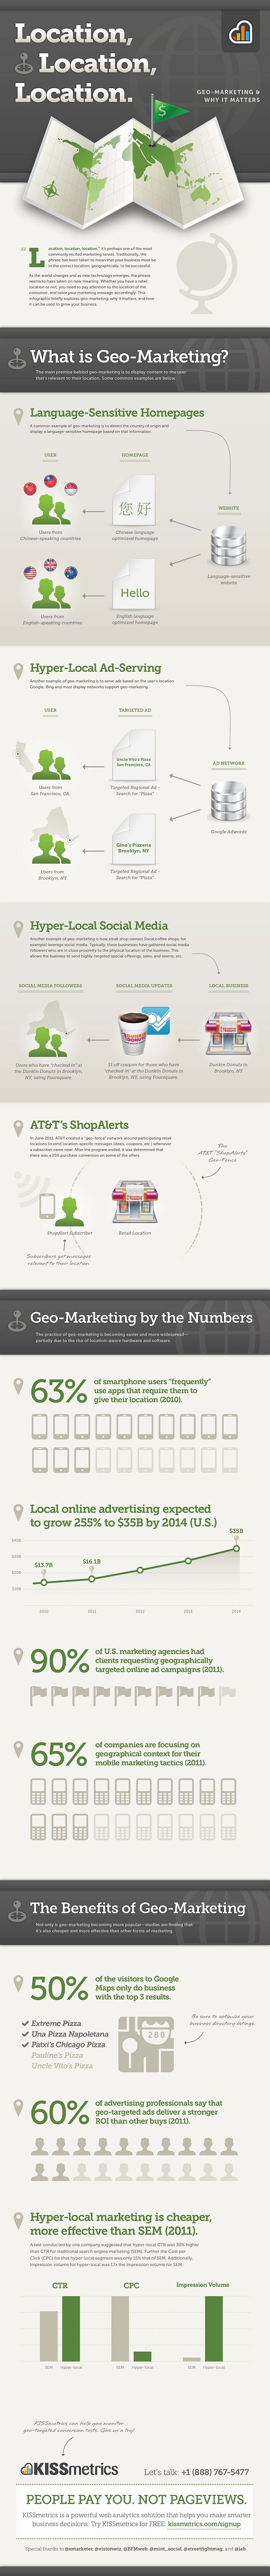 Geo-Marketing and Why it Matters